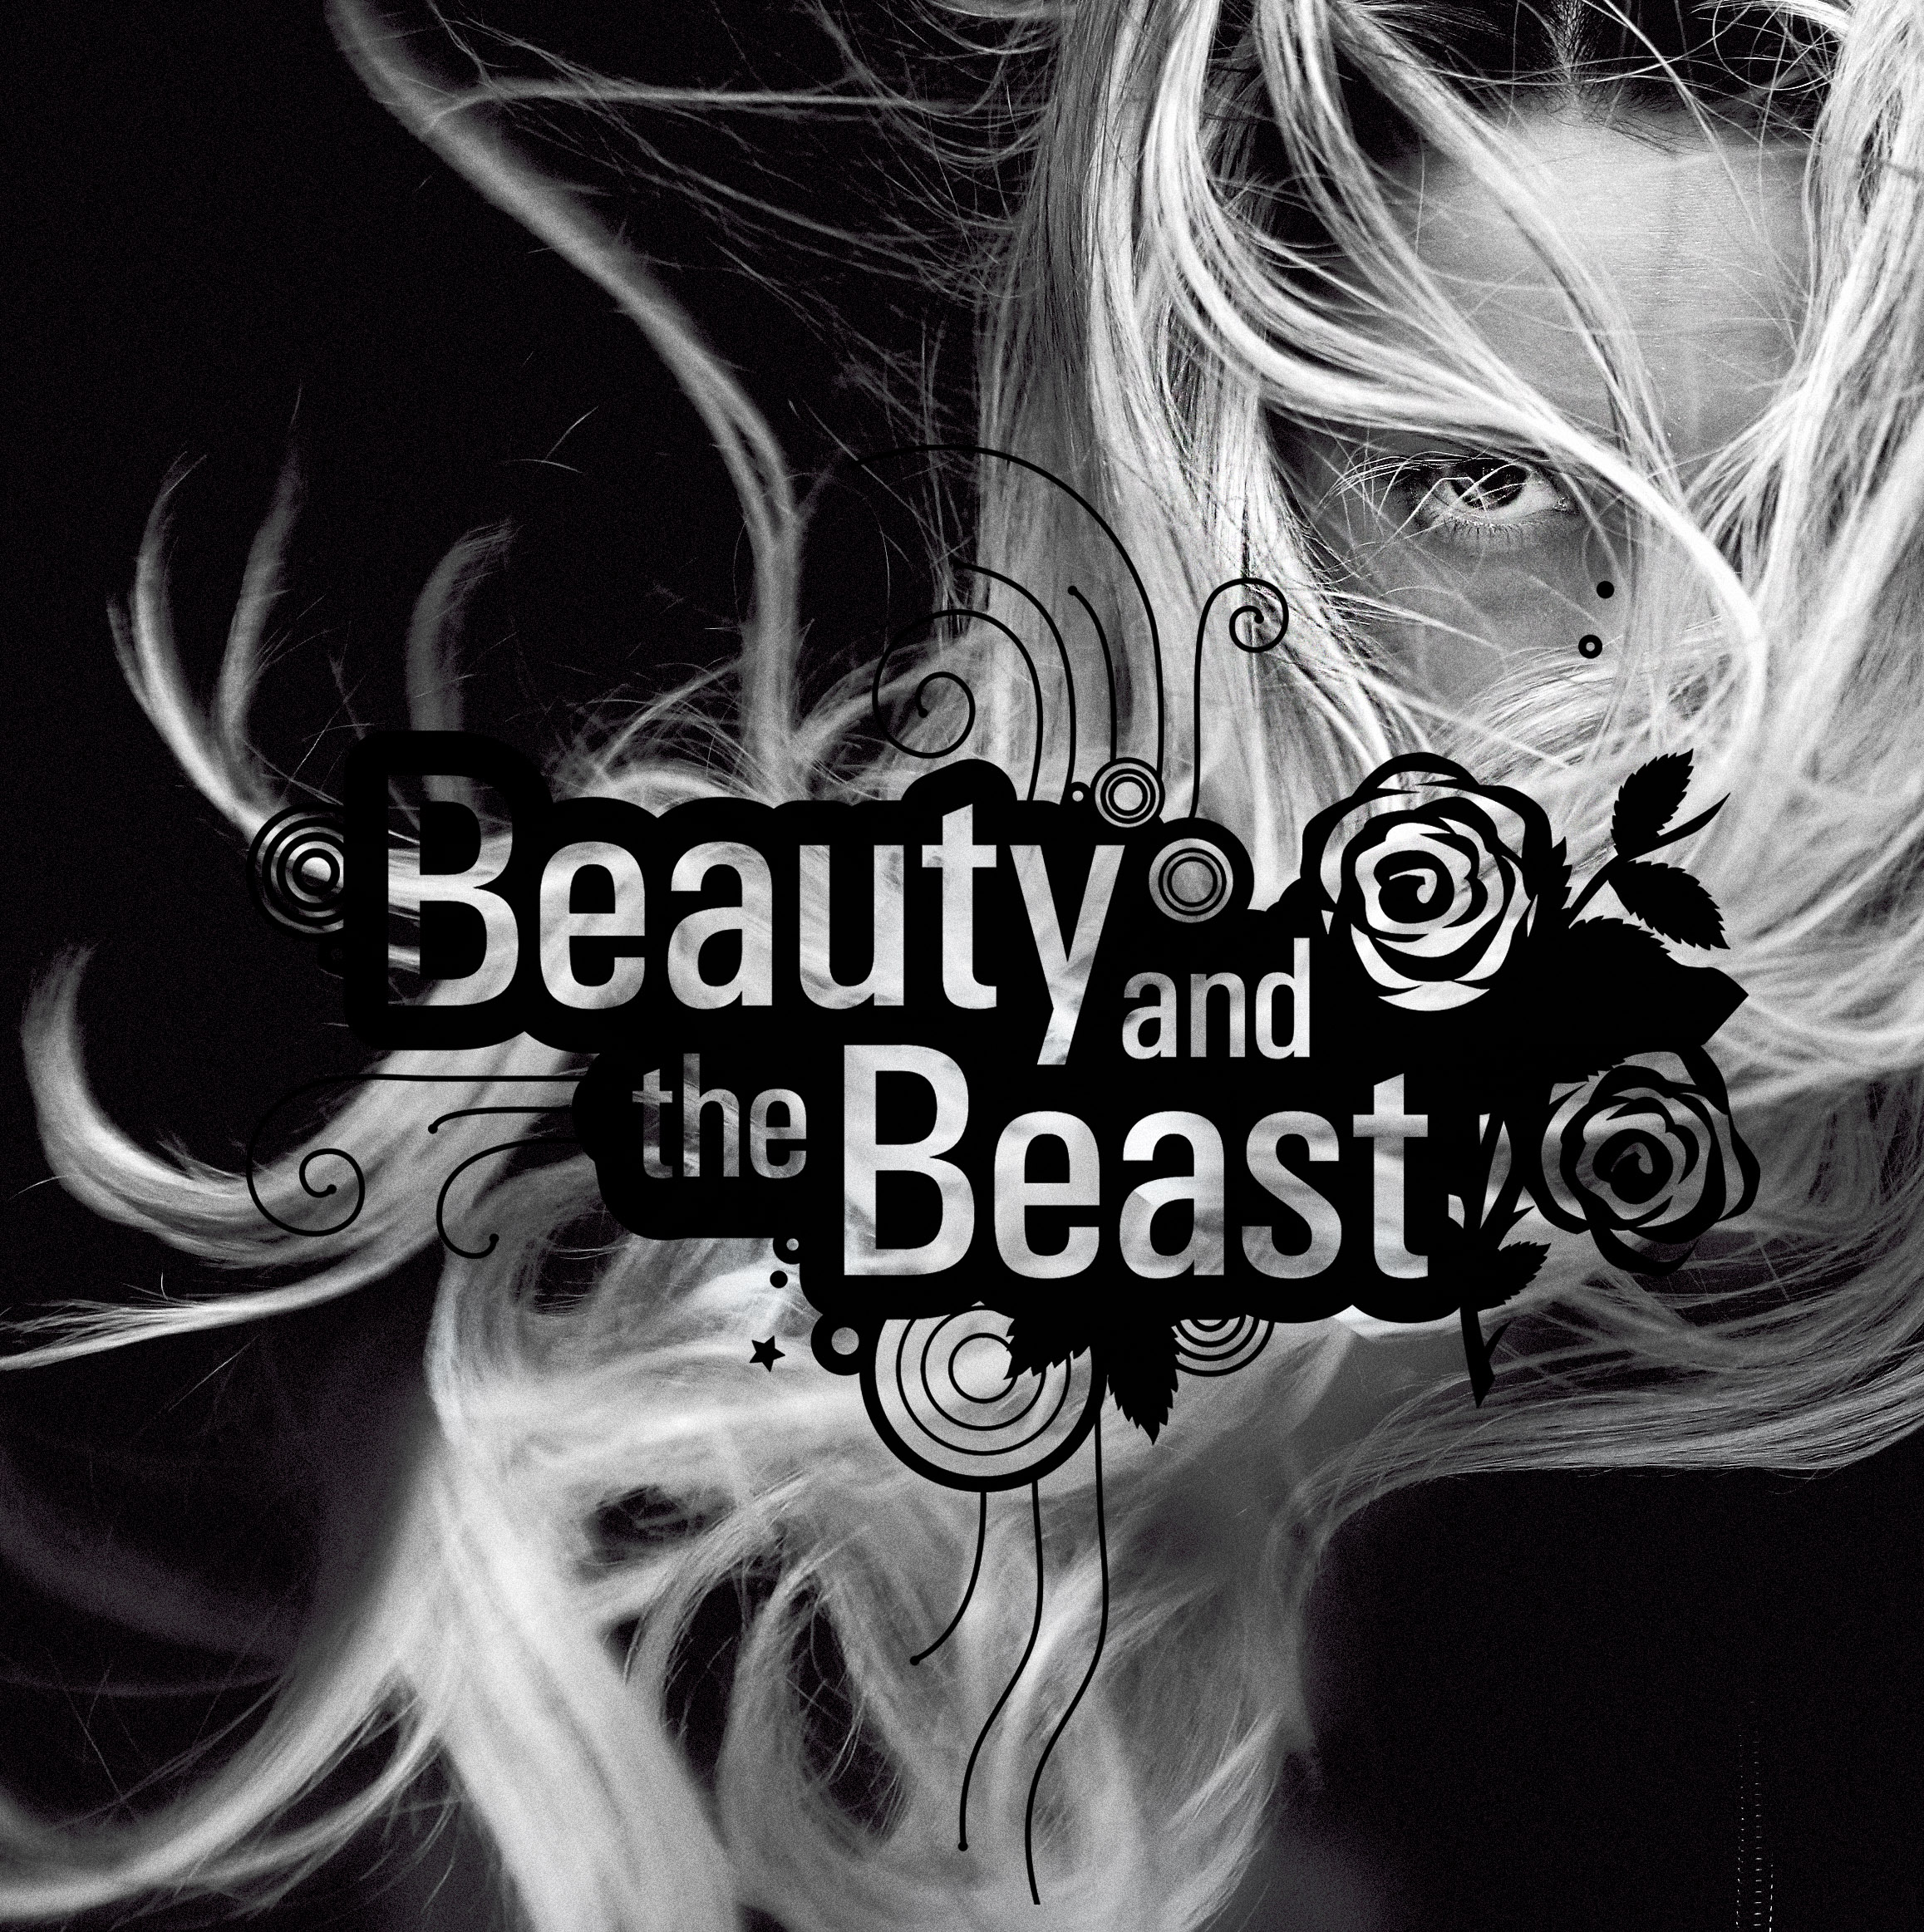 Beauty and the Beast - visual identity, graphic system by Color.zone agency for the image! hair salons.